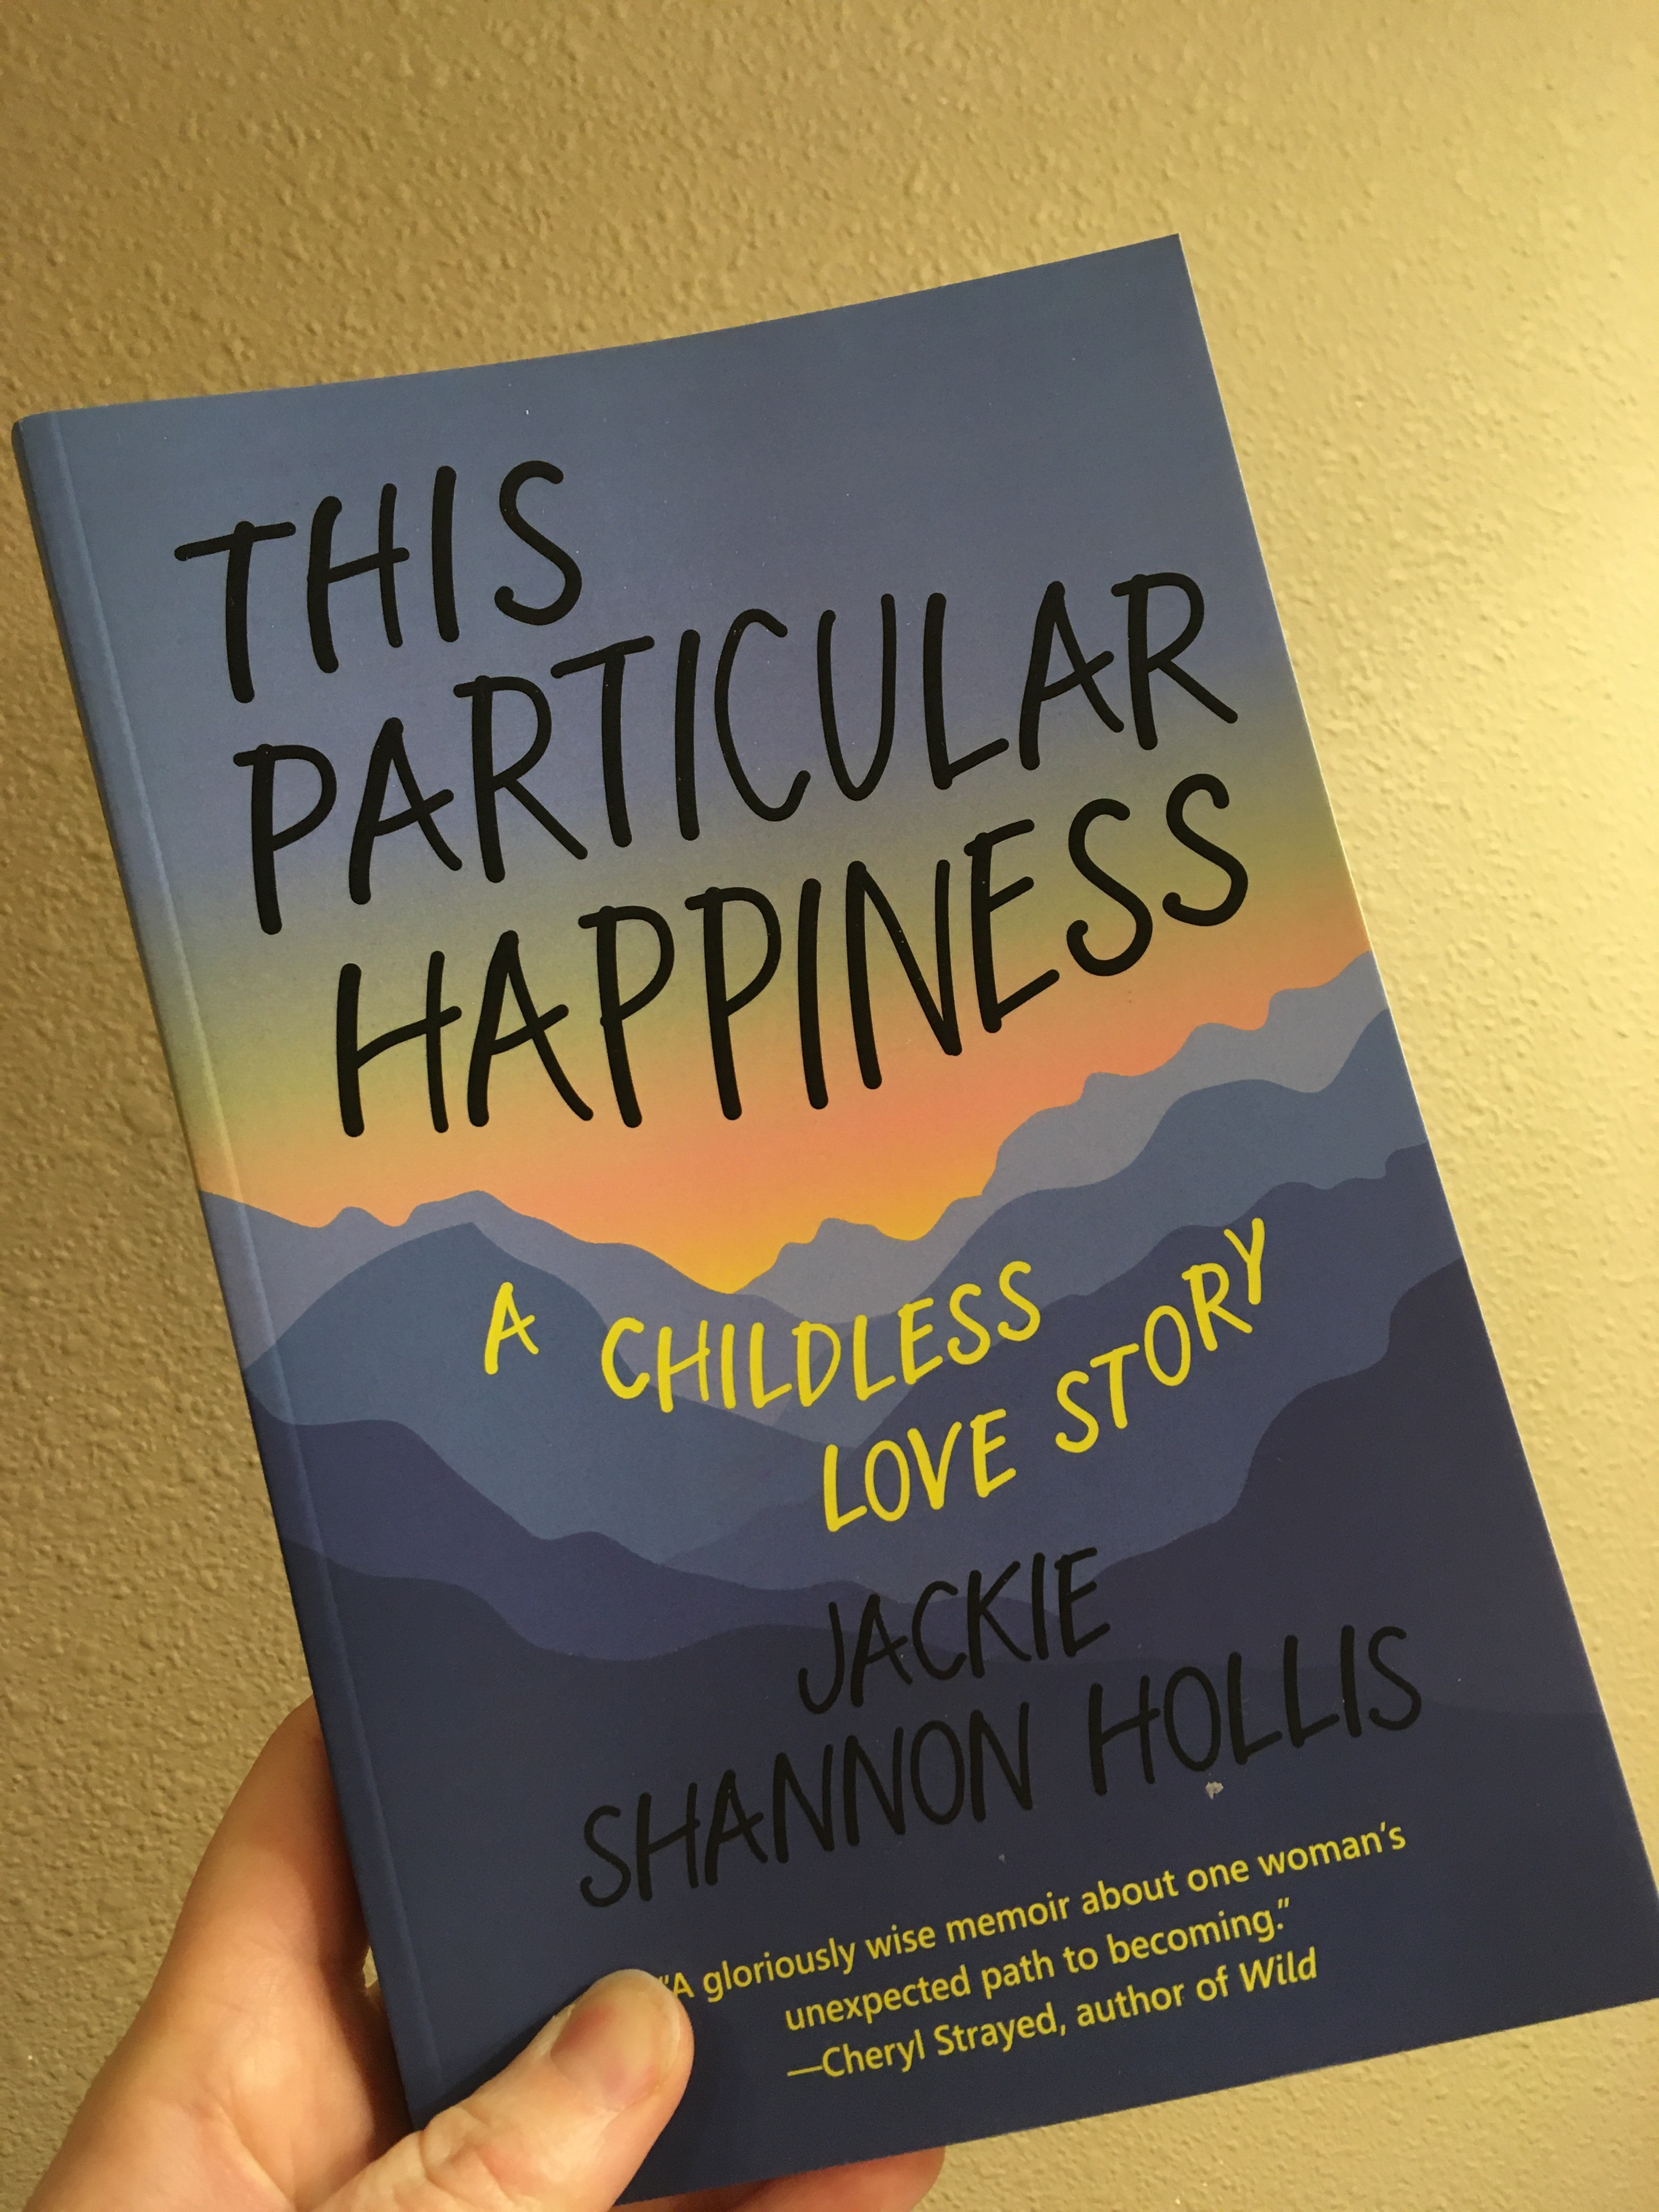 This particular happiness book cover